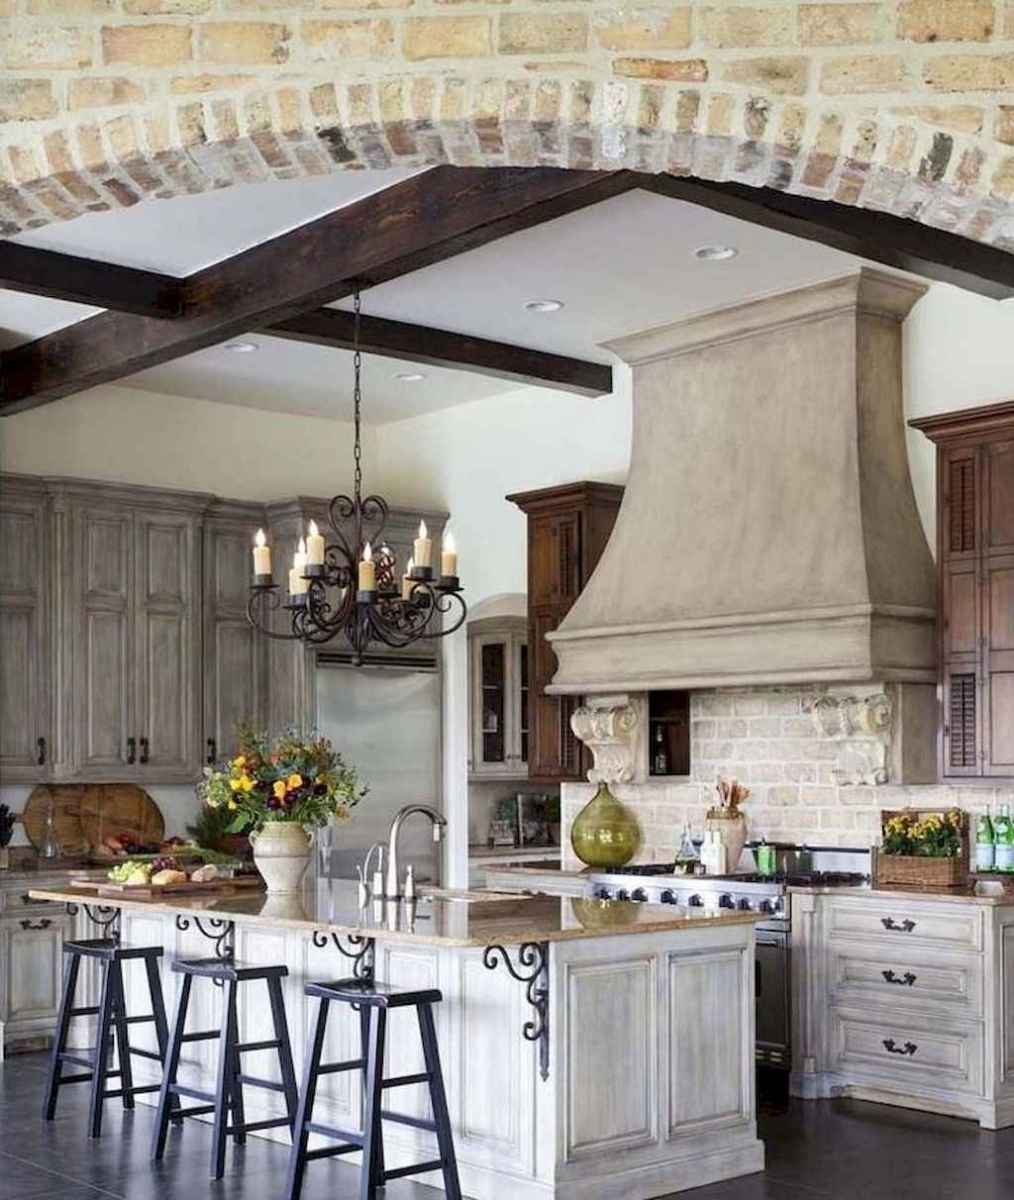 14 incredible french country kitchen design ideas